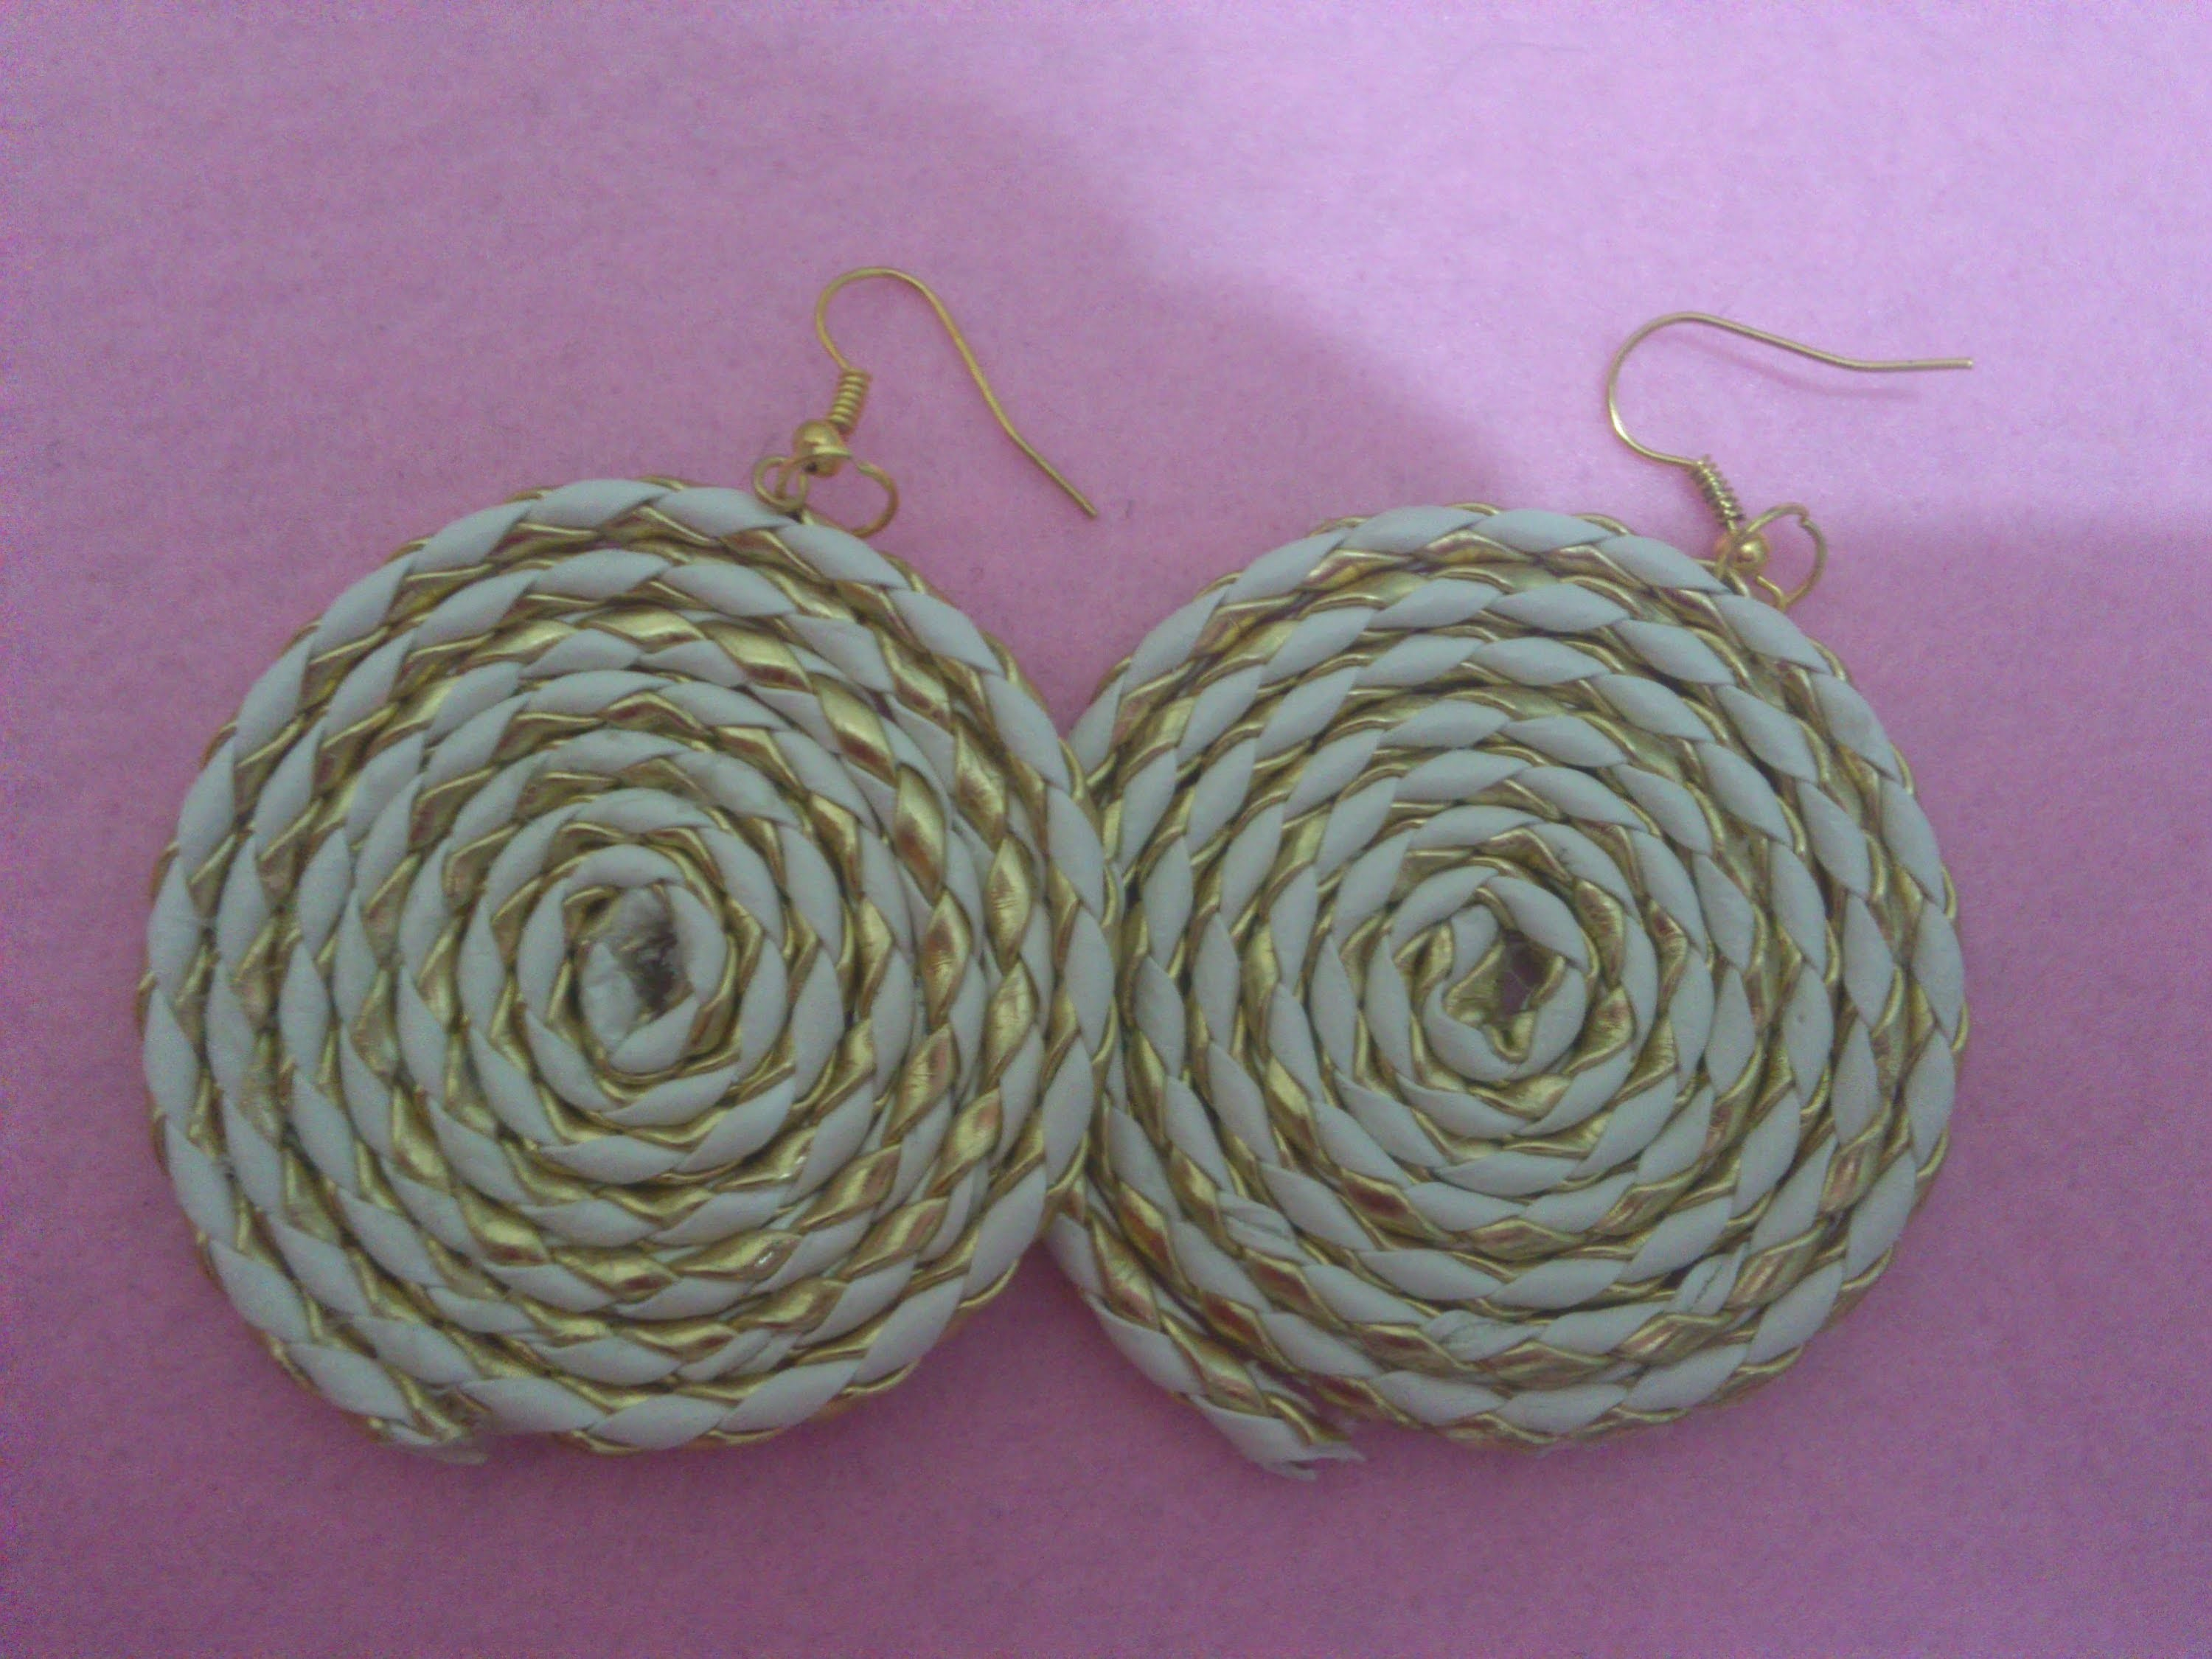 DIY: Super Easy Paracord Earrings